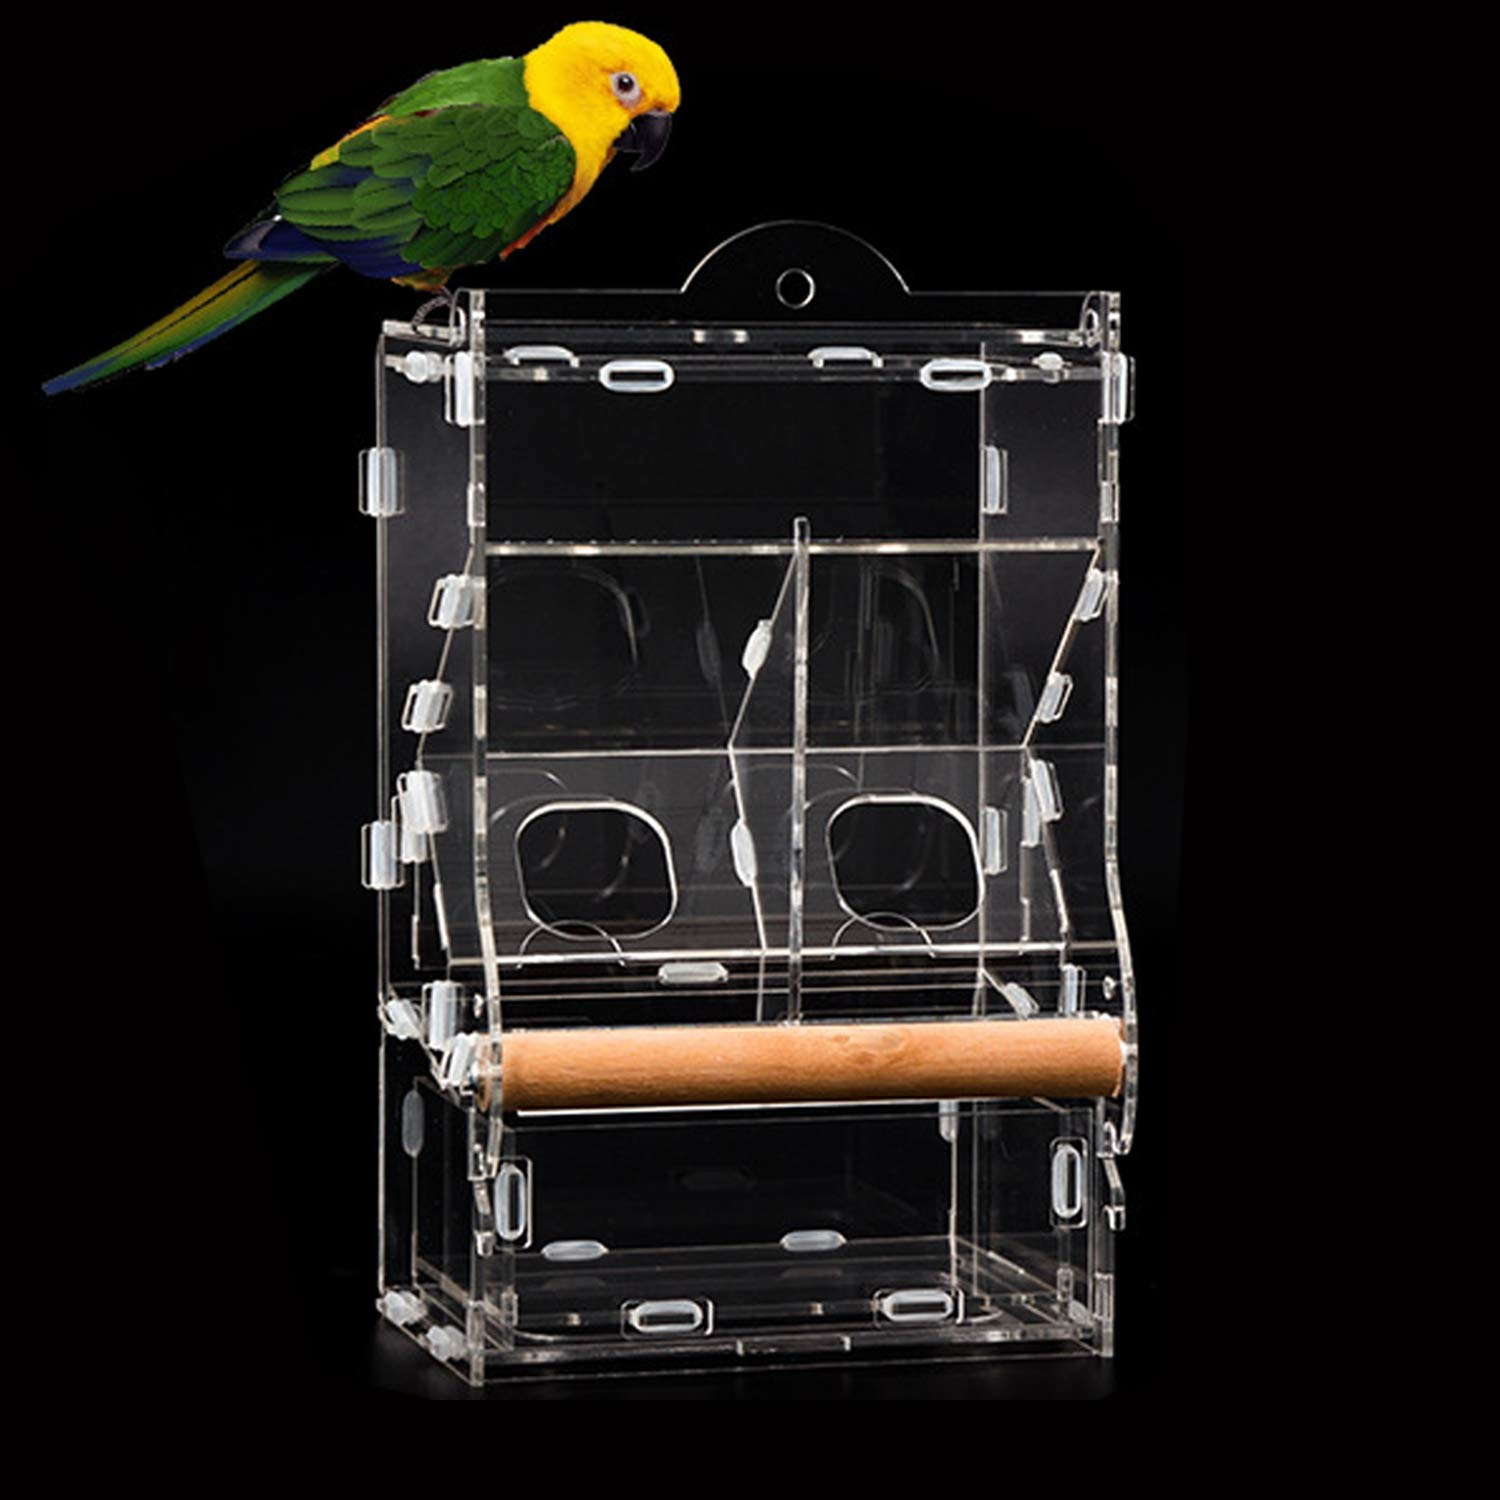 YJJKJ No-Mess Double Bird Feeder, Parrot Automatic Feeder for Budgerigar Canary Lovebird Cockatiel Finch Parakeet Seed Food Feeding Station, with Perch, No Need to Install by YJJKJ